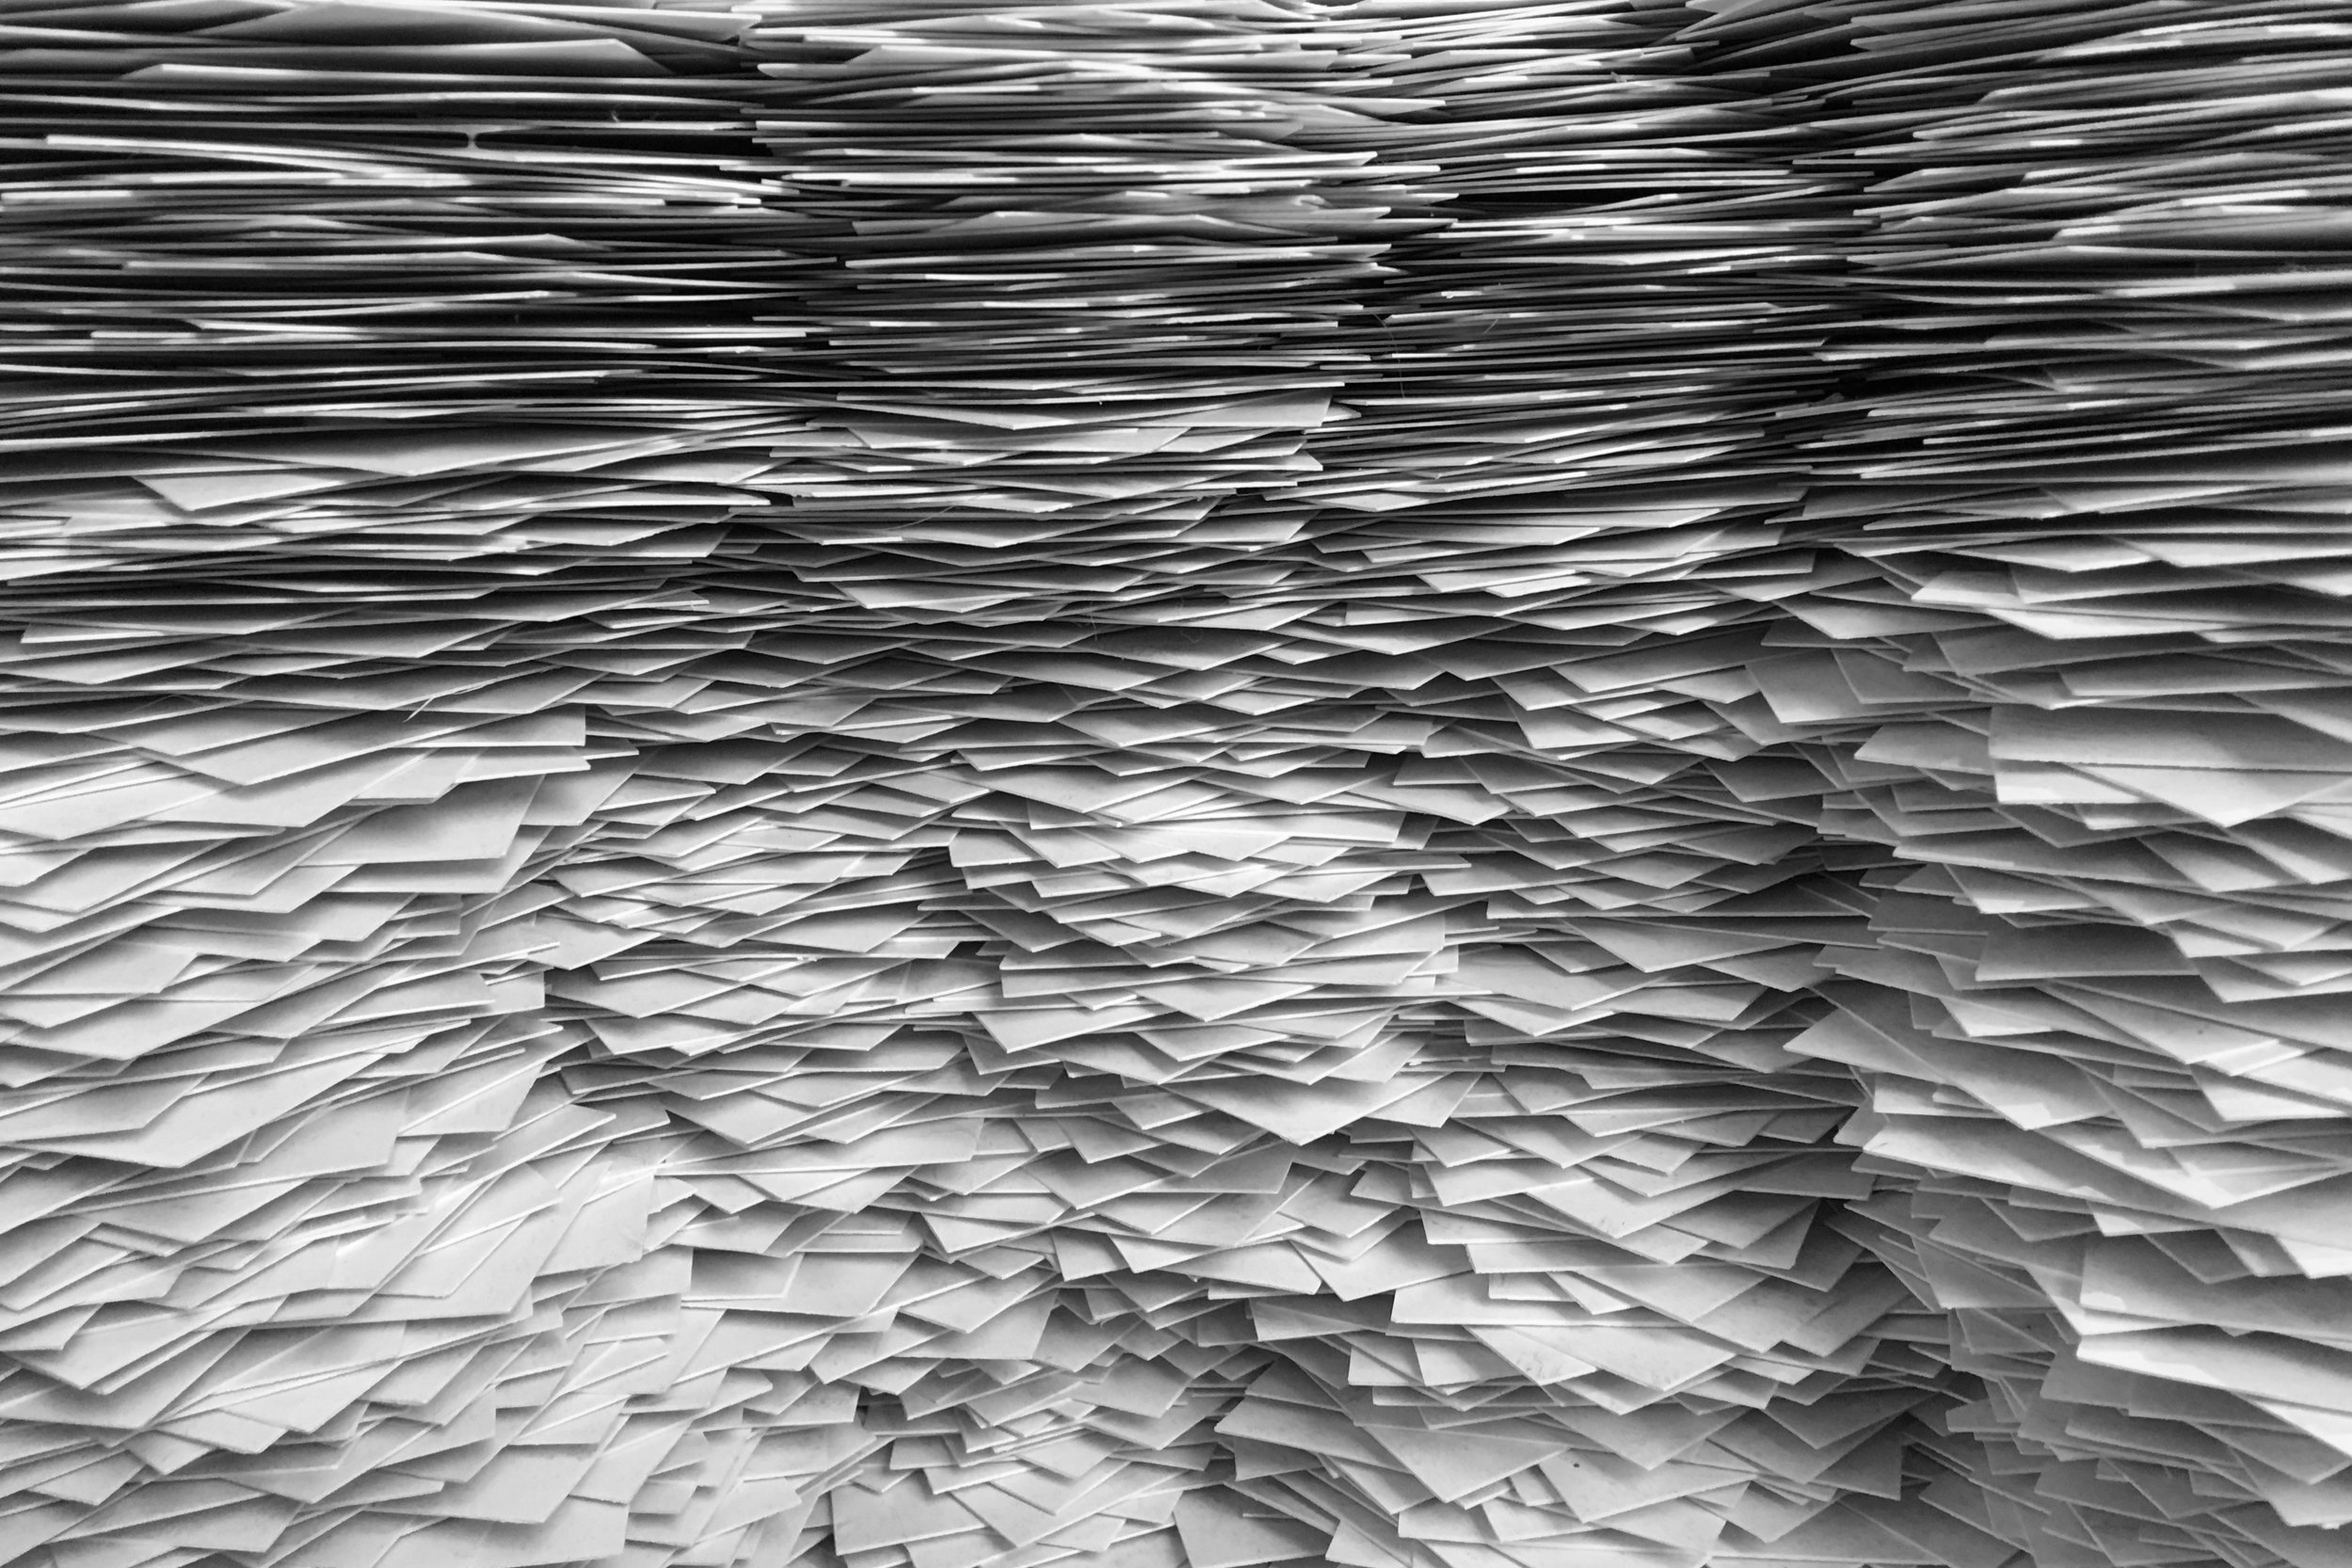 go paperless by scanning documents